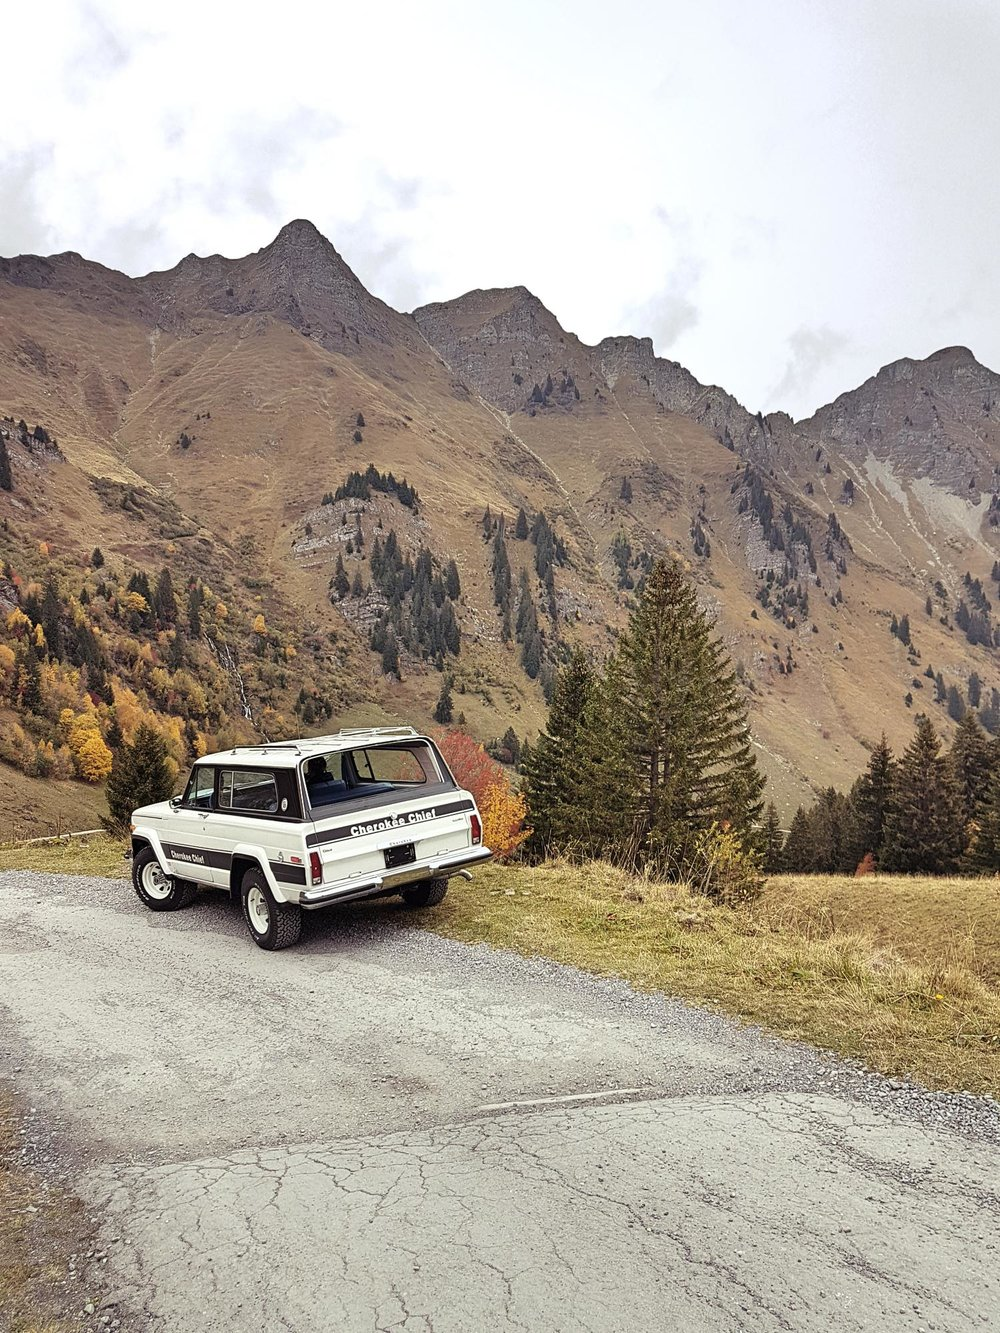 jeep-cherokee-chief-1978-shooting-morgins-switzerland-85.jpg